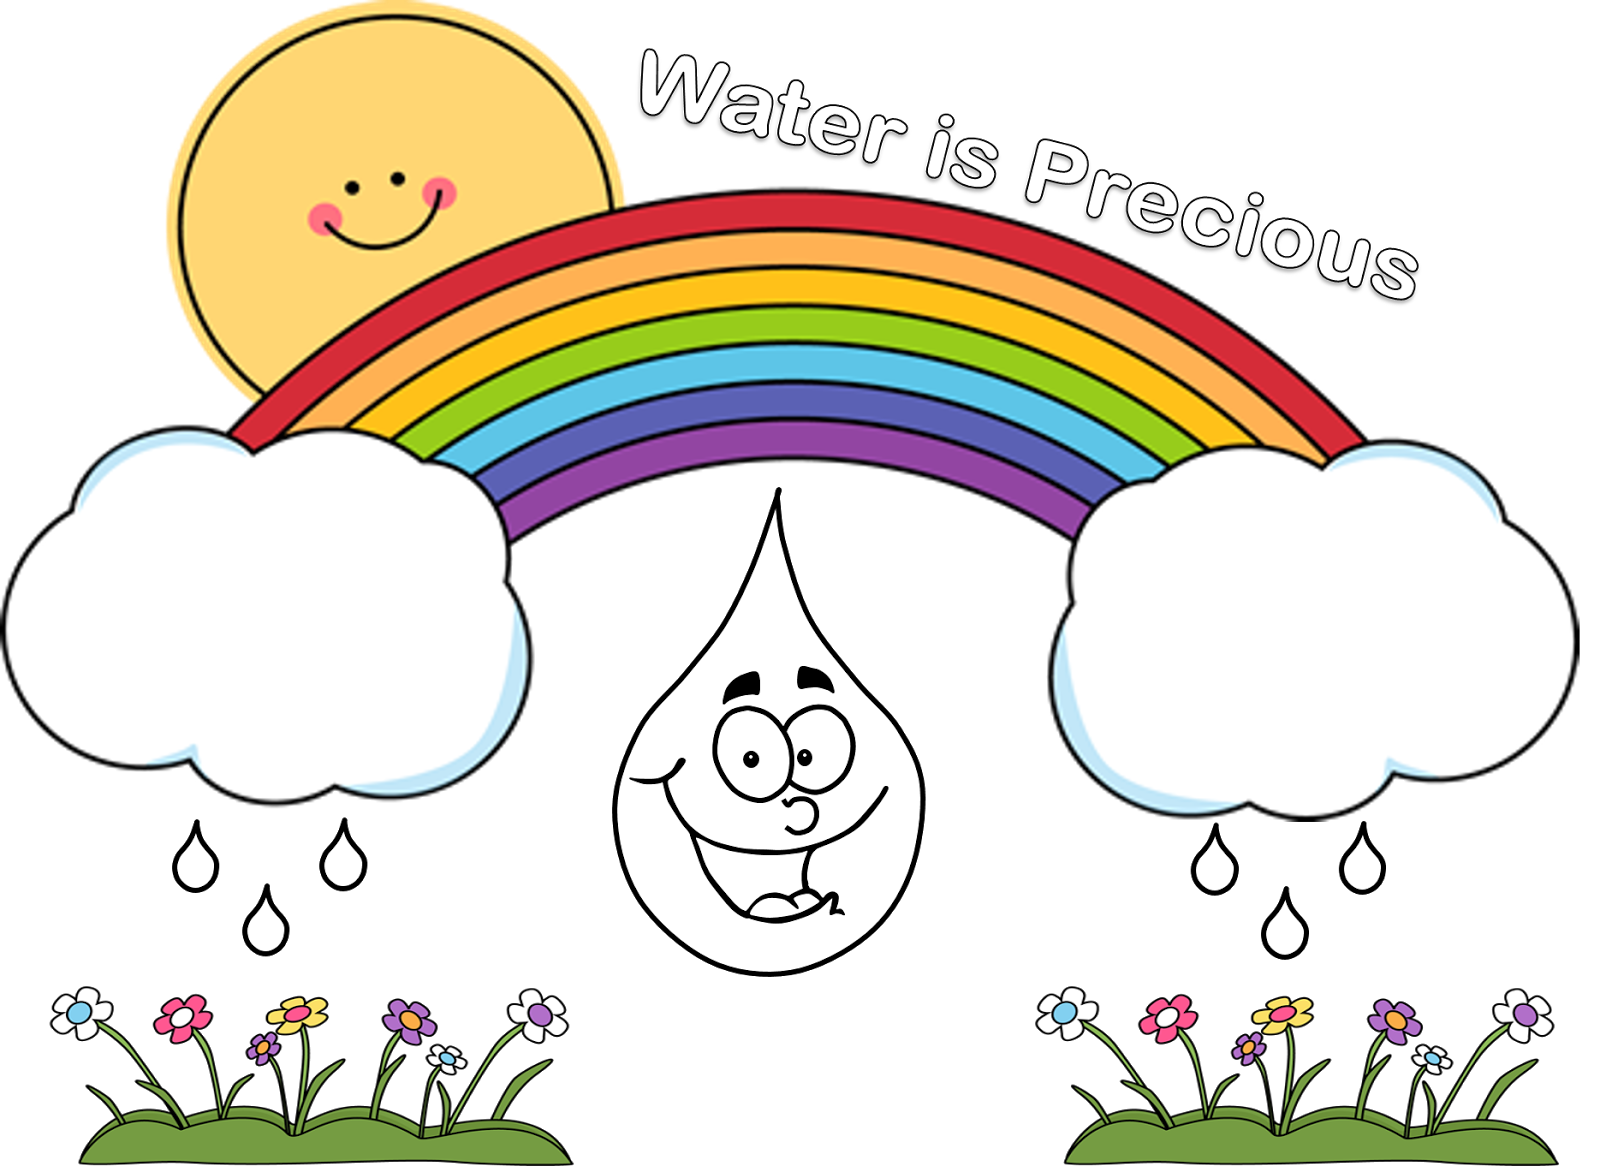 worksheet Save Water Worksheets For Kindergarten poster for water conservation2 clipart club free cliparts club